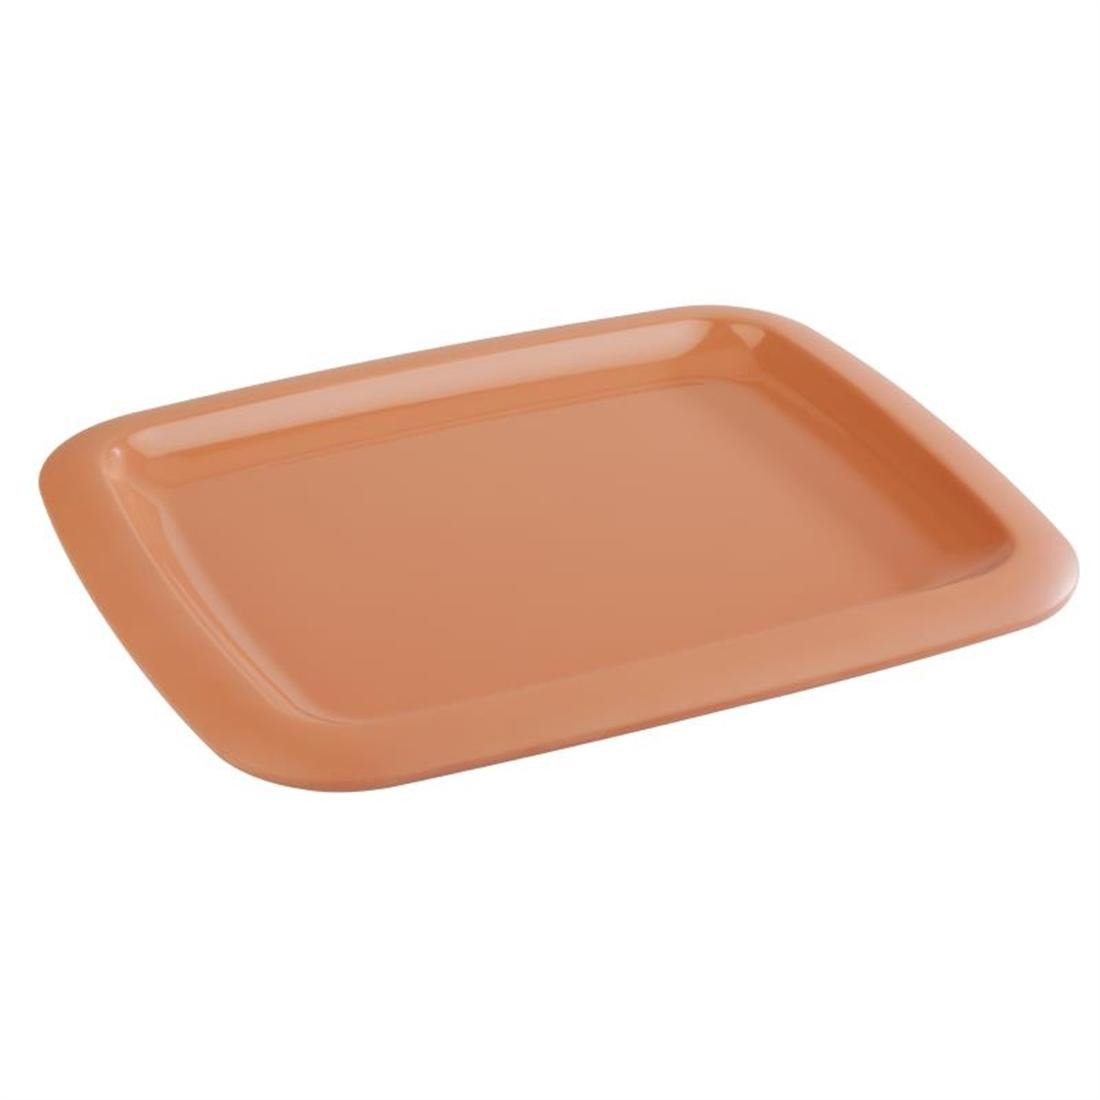 GN571 - Z-DISCONTINUED APS Tierra Terracotta Effect Melamine Tray GN 1/2 - Each - GN571